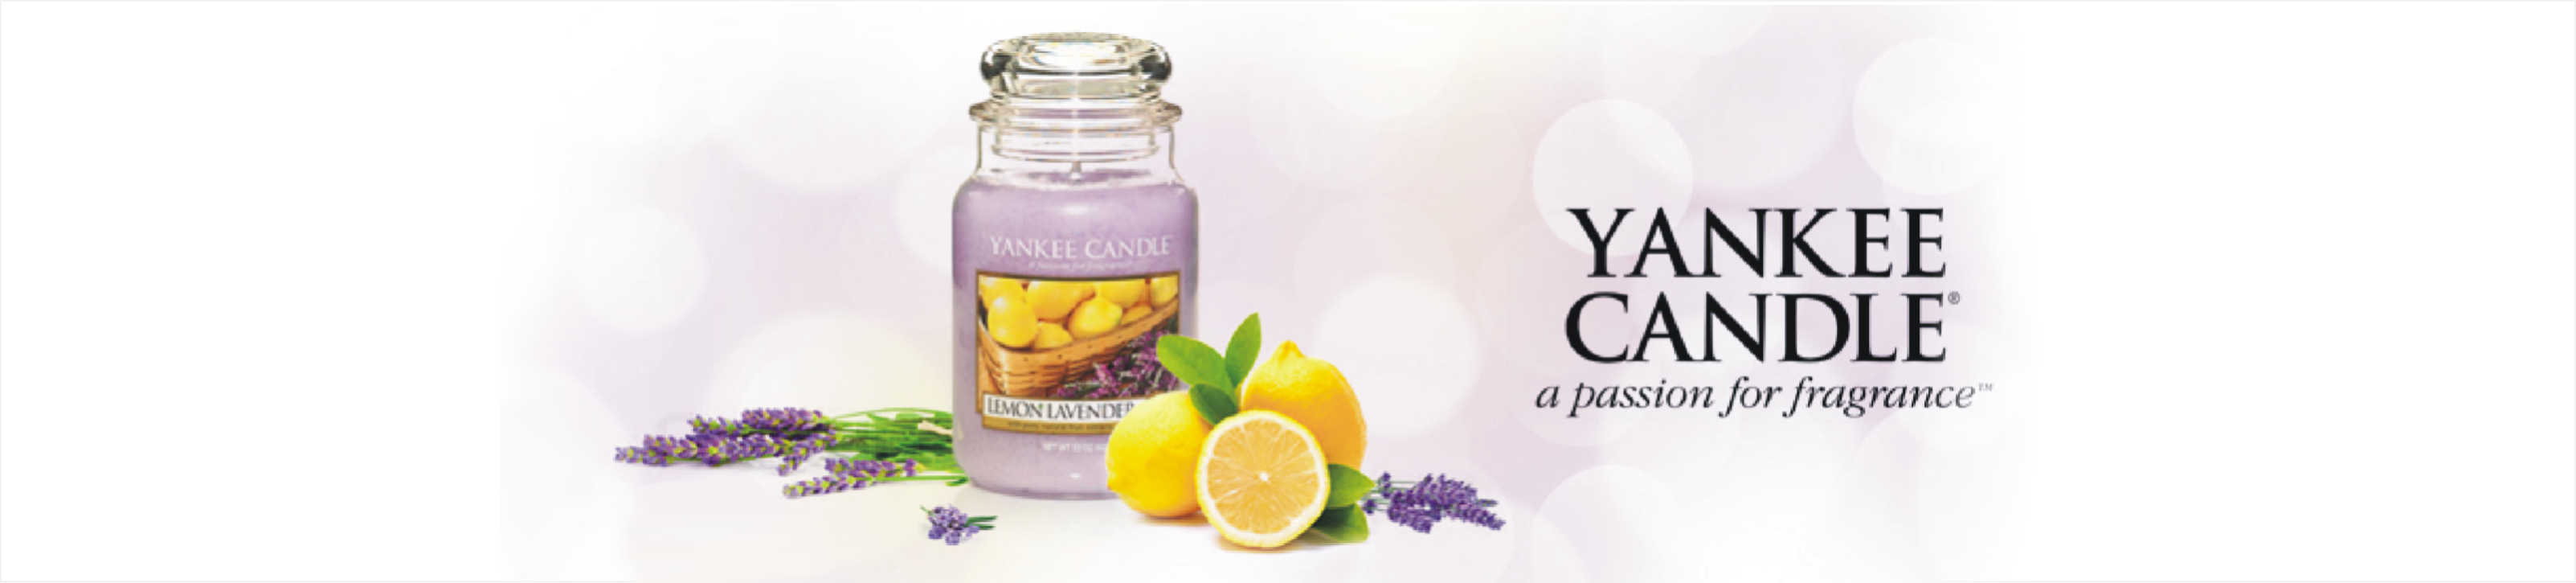 Yankee Candles Passion for Fragrance